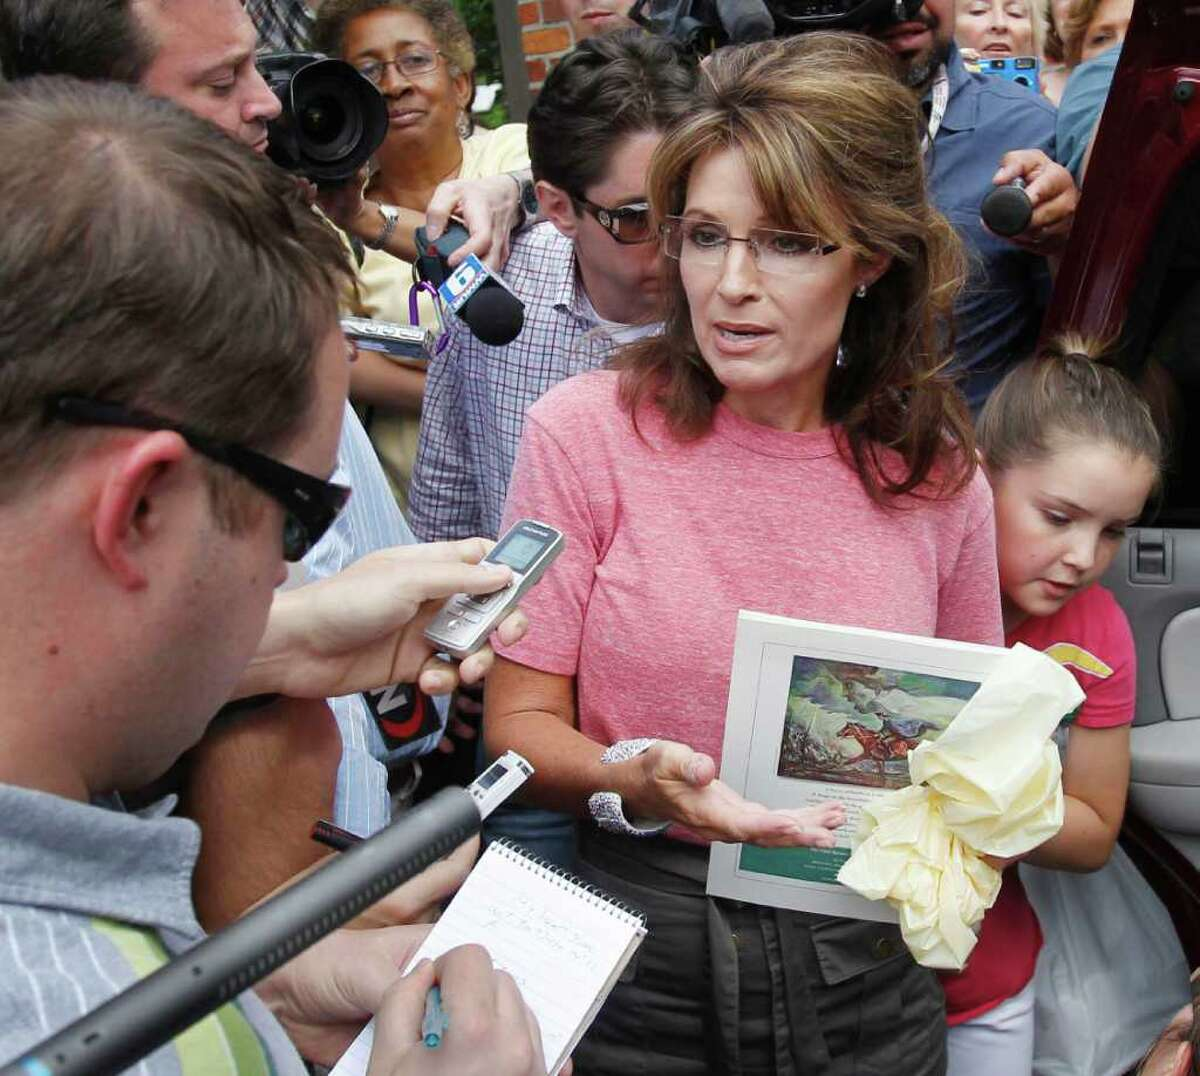 FILE - In this June 2, 2011, file photo former Alaska Gov. Sarah Palin, holding a booklet depicting Paul Revere, speaks briefly with the media as she tours Boston's North End neighborhood. On Fox News Sunday Palin insisted Sunday, June 5, 2011 in Washington that history was on her side when she claimed that Paul Revere's famous Massachusetts ride was intended to warn both British soldiers and his fellow colonists. At right is Palin's daughter Piper. (AP Photo/Steven Senne, File)